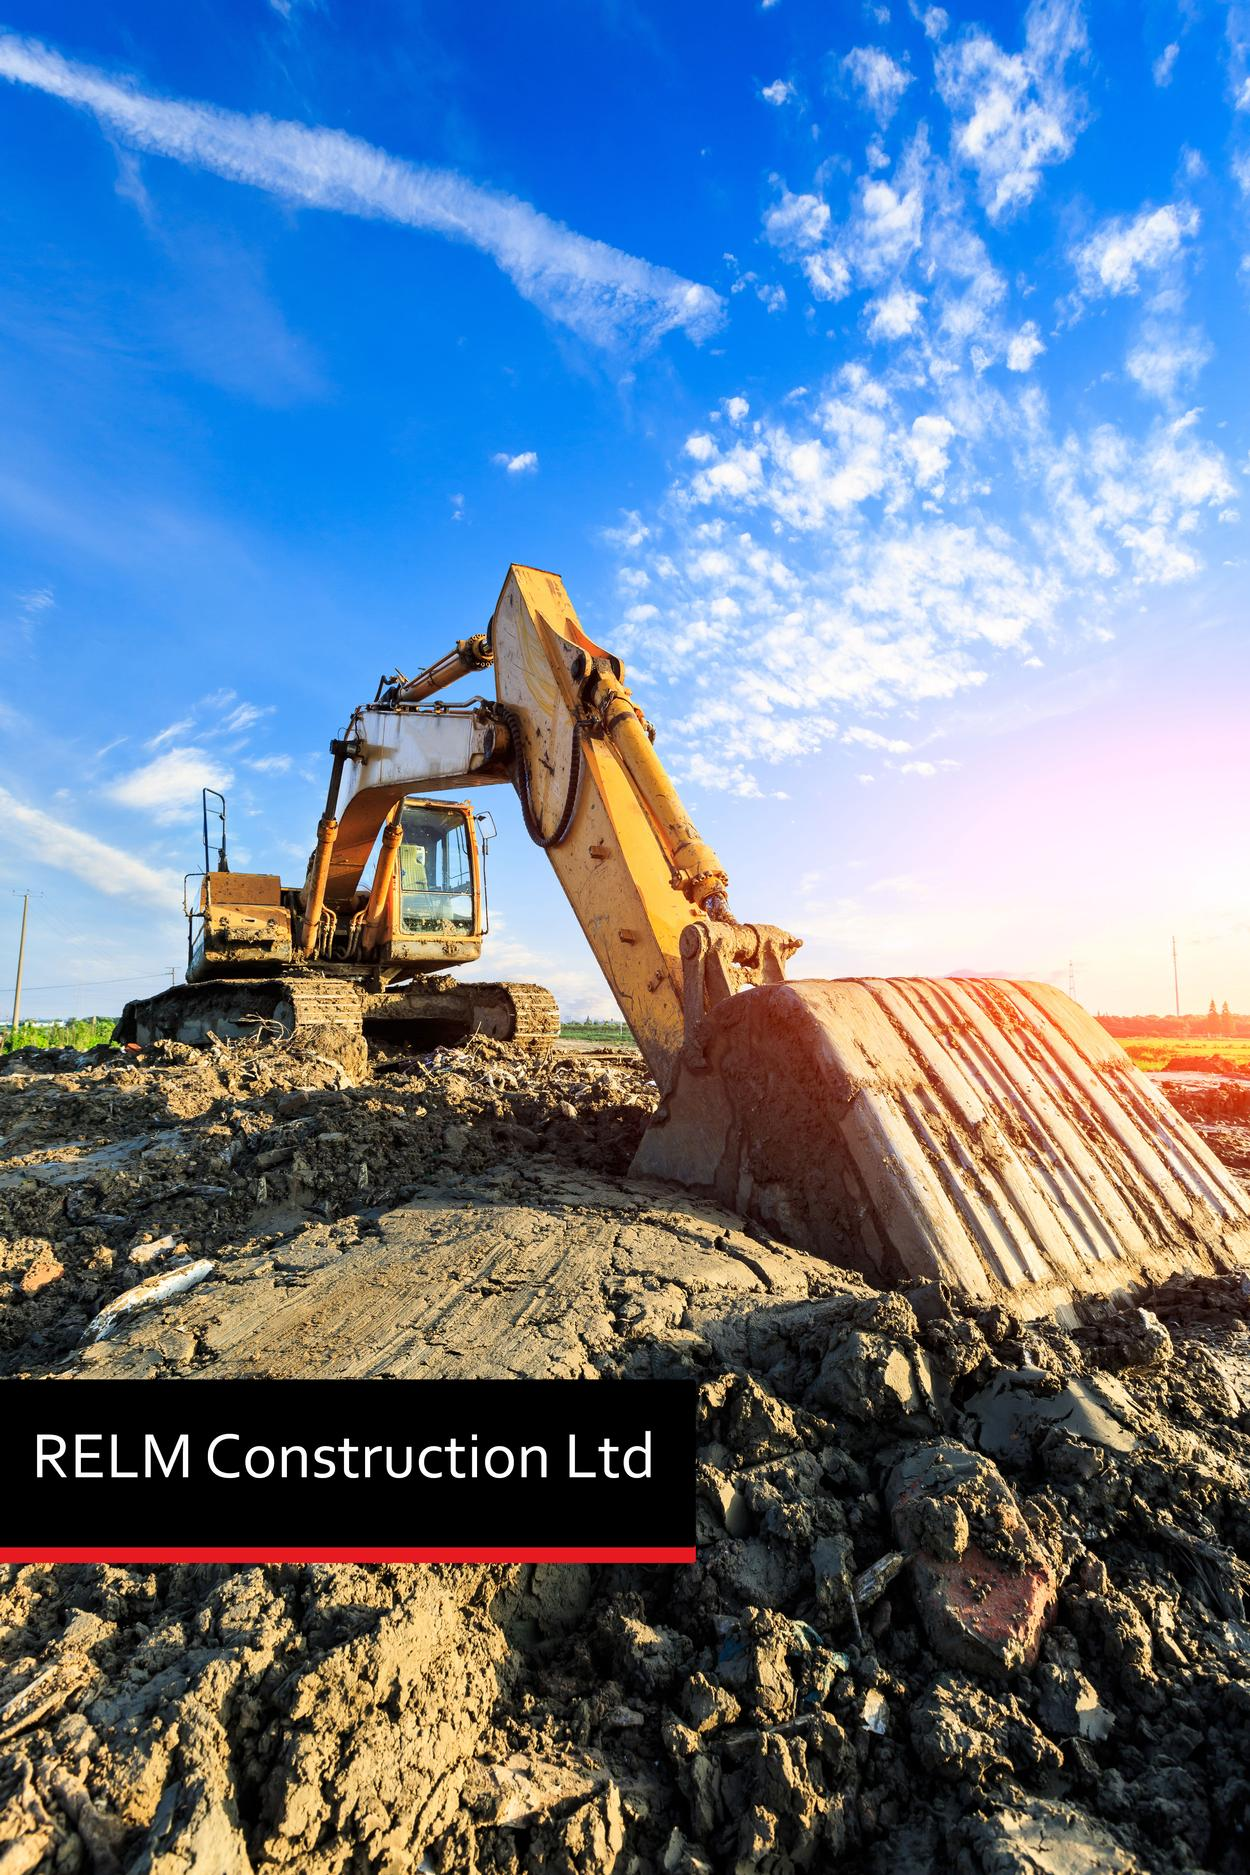 RELM Construction Company  in North Wales